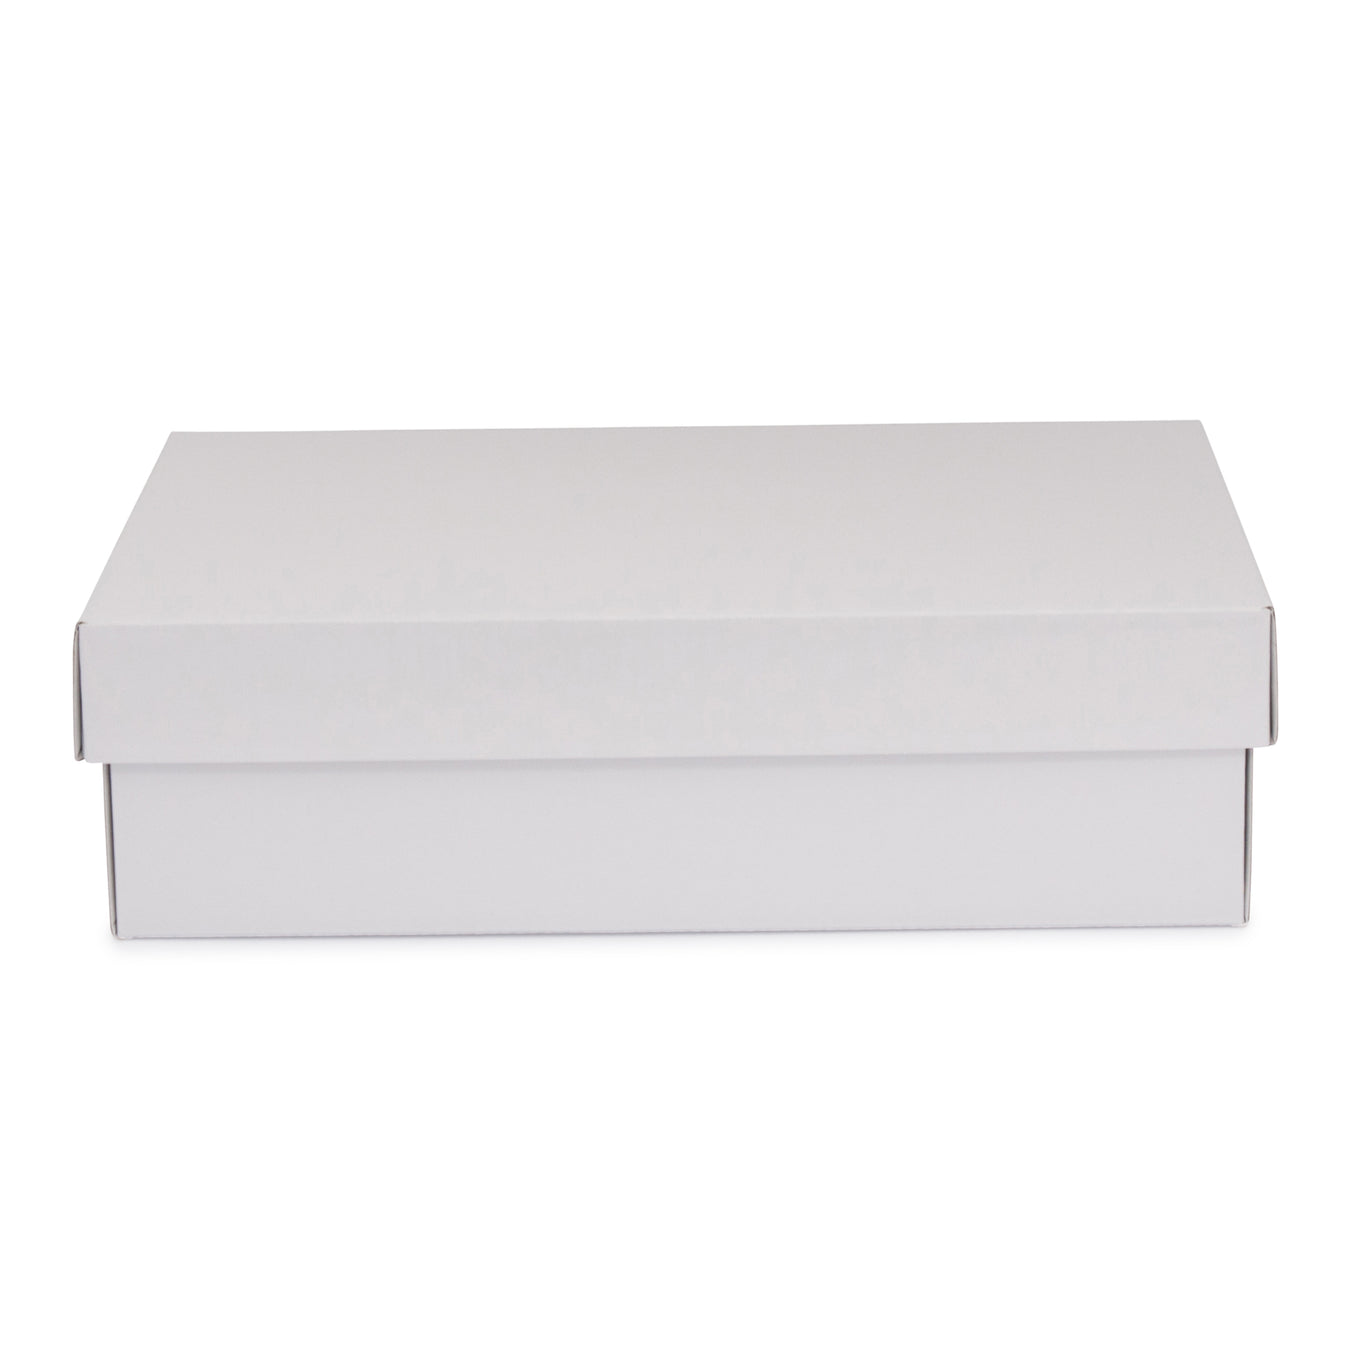 Rectangle Hamper Boxes